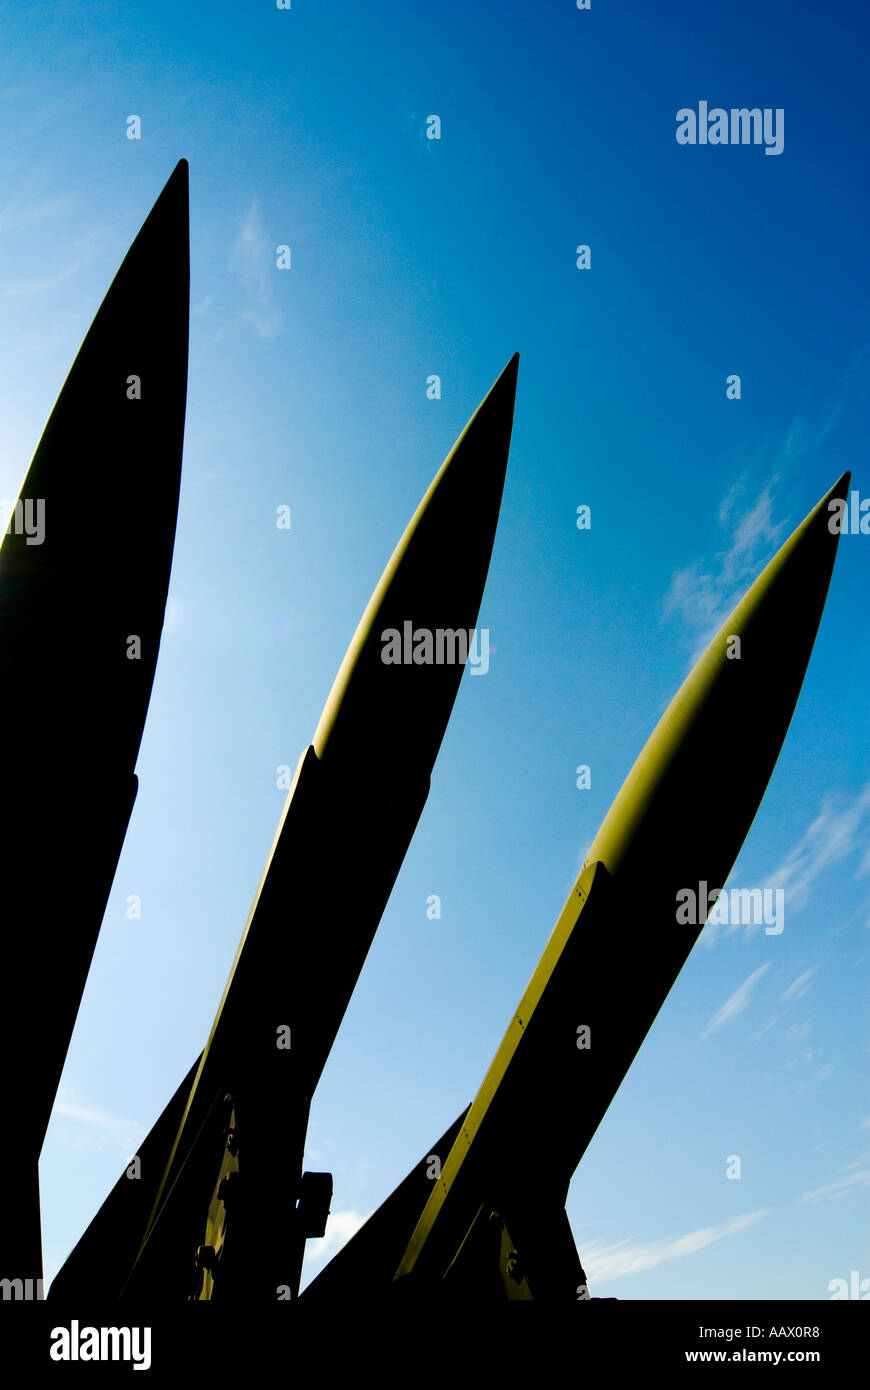 HAWK Air Defense Missiles on Launcher - Stock Image